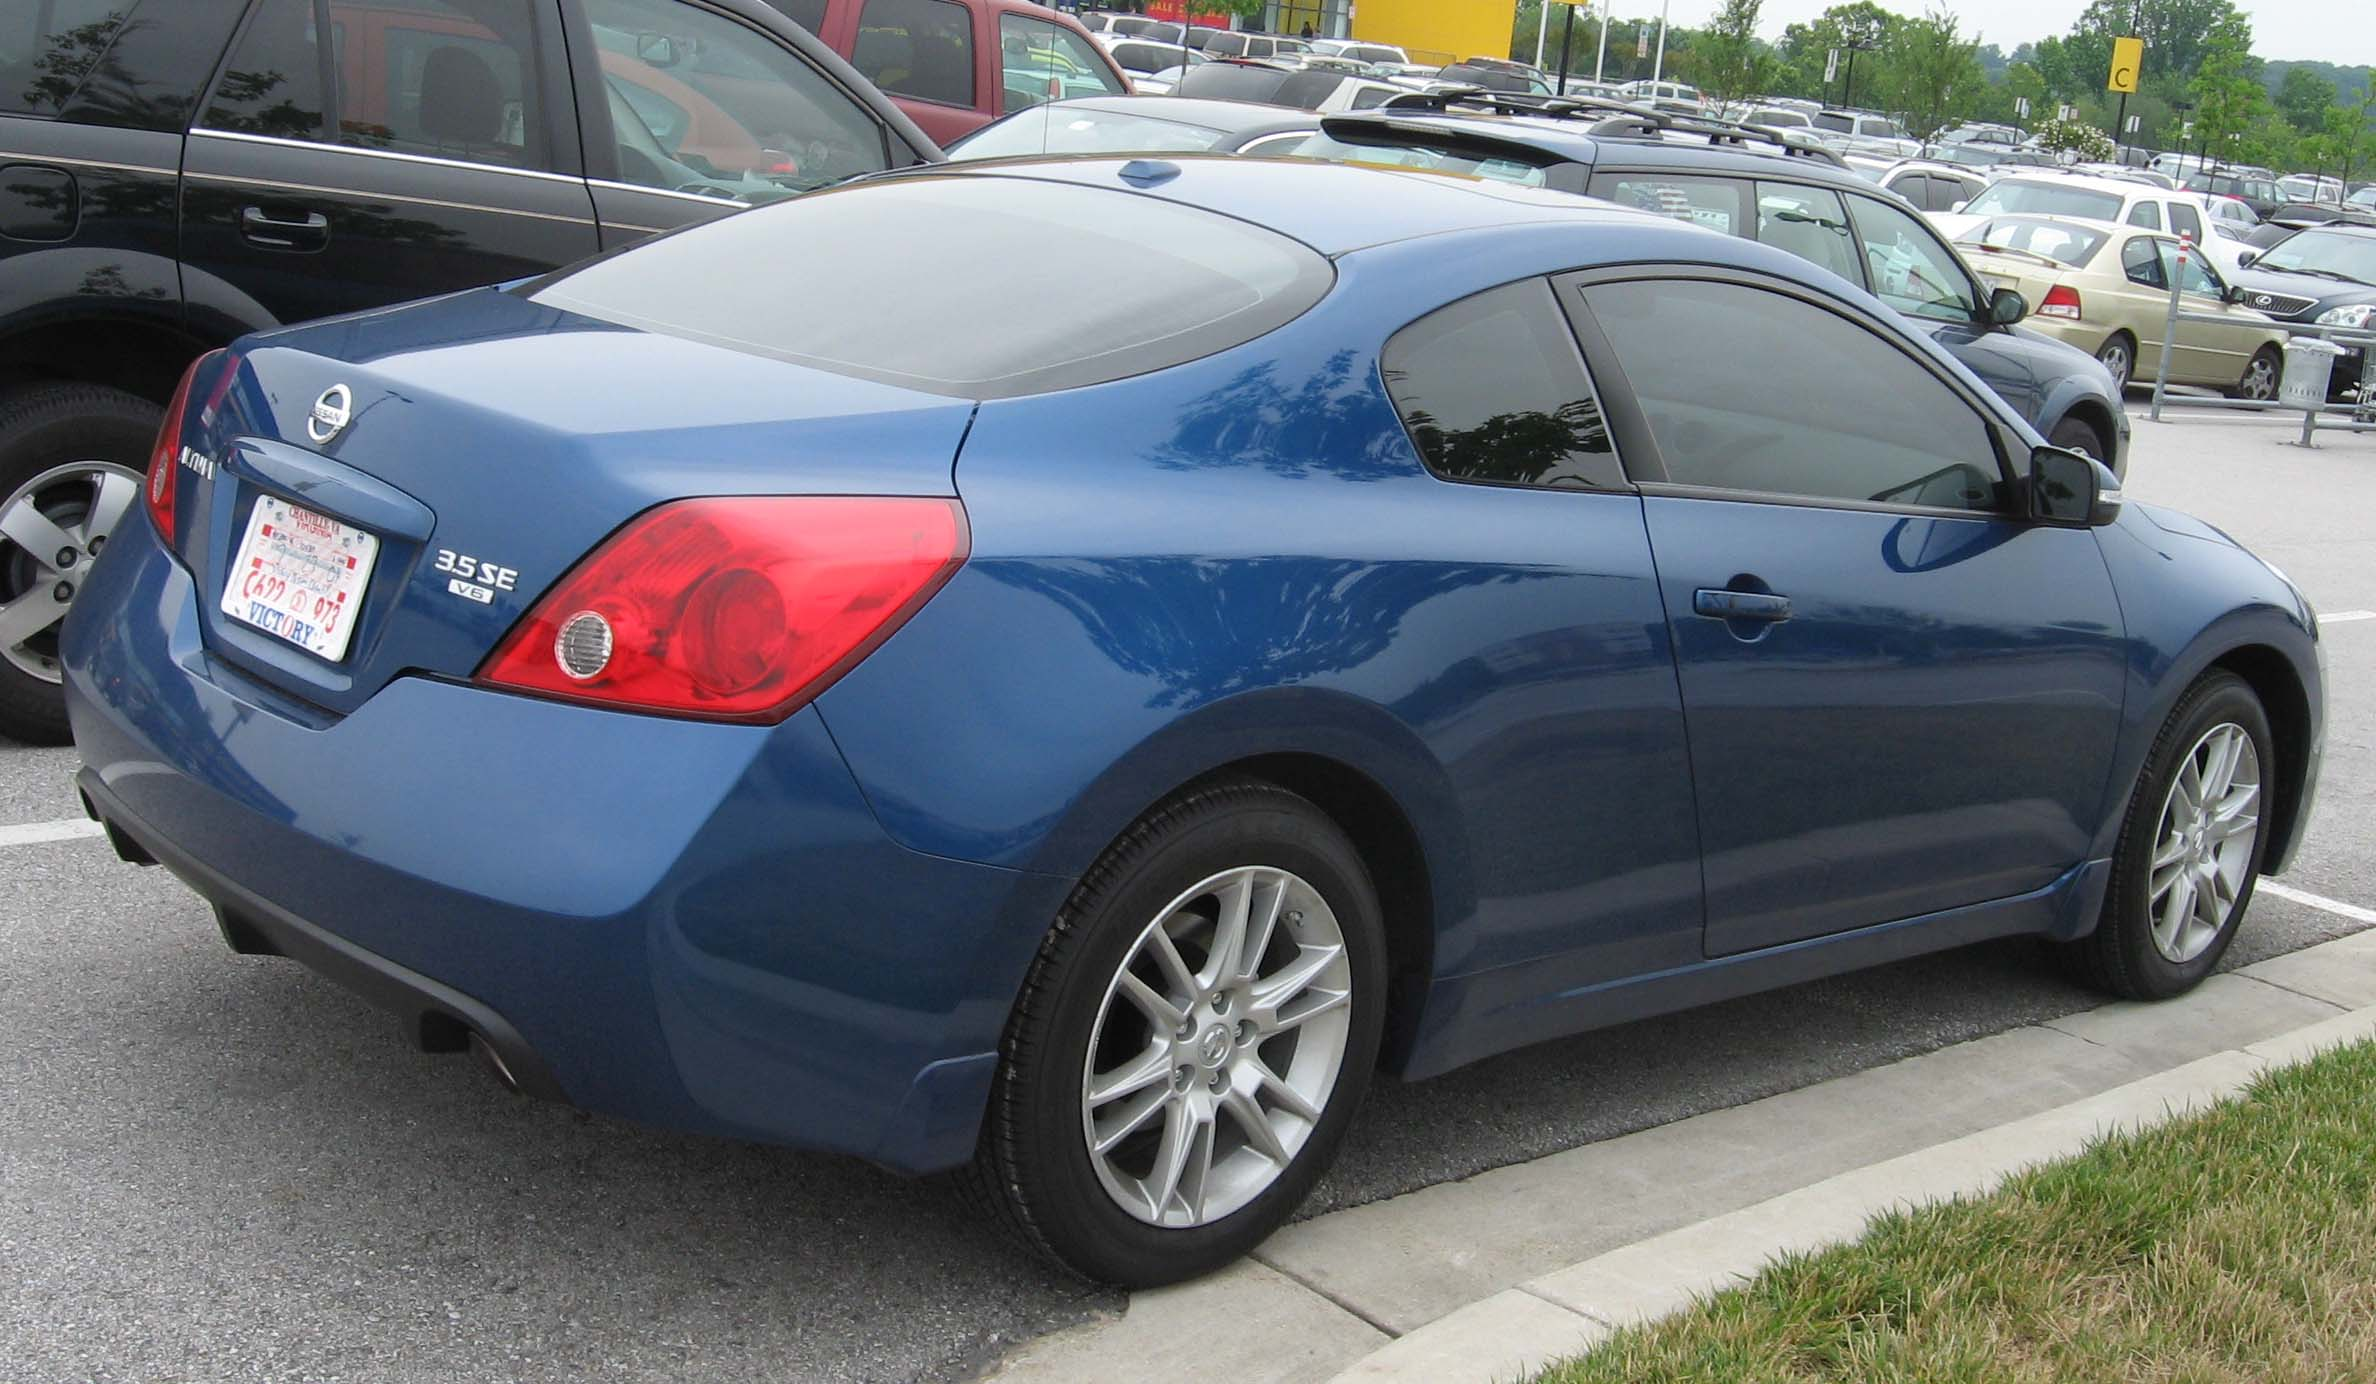 File:2008 Nissan Altima Coupe Rear